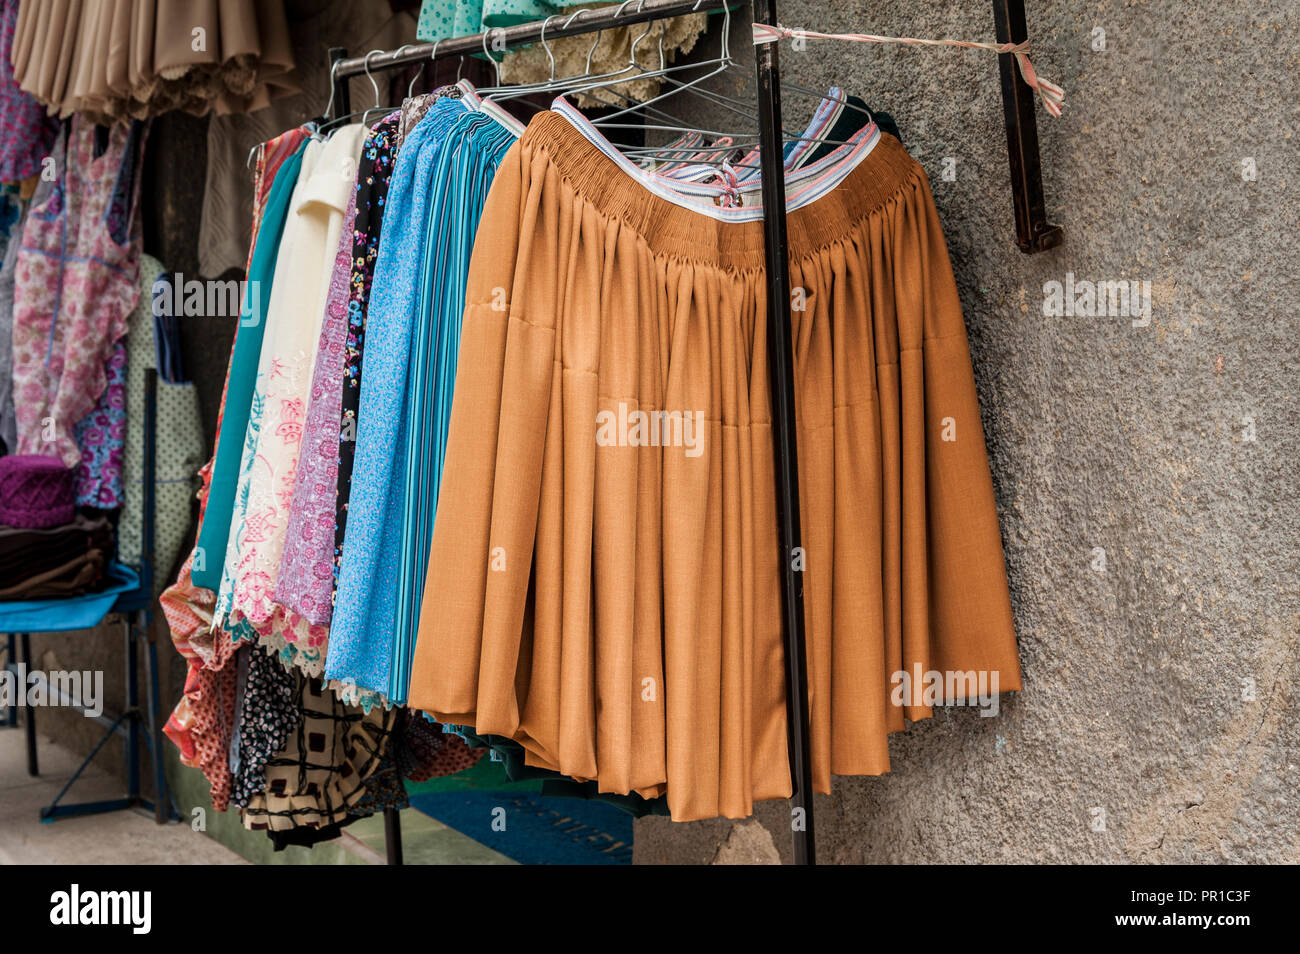 Typical bolivian skirts and local dresses, Copacabana - Bolivia - Stock Image